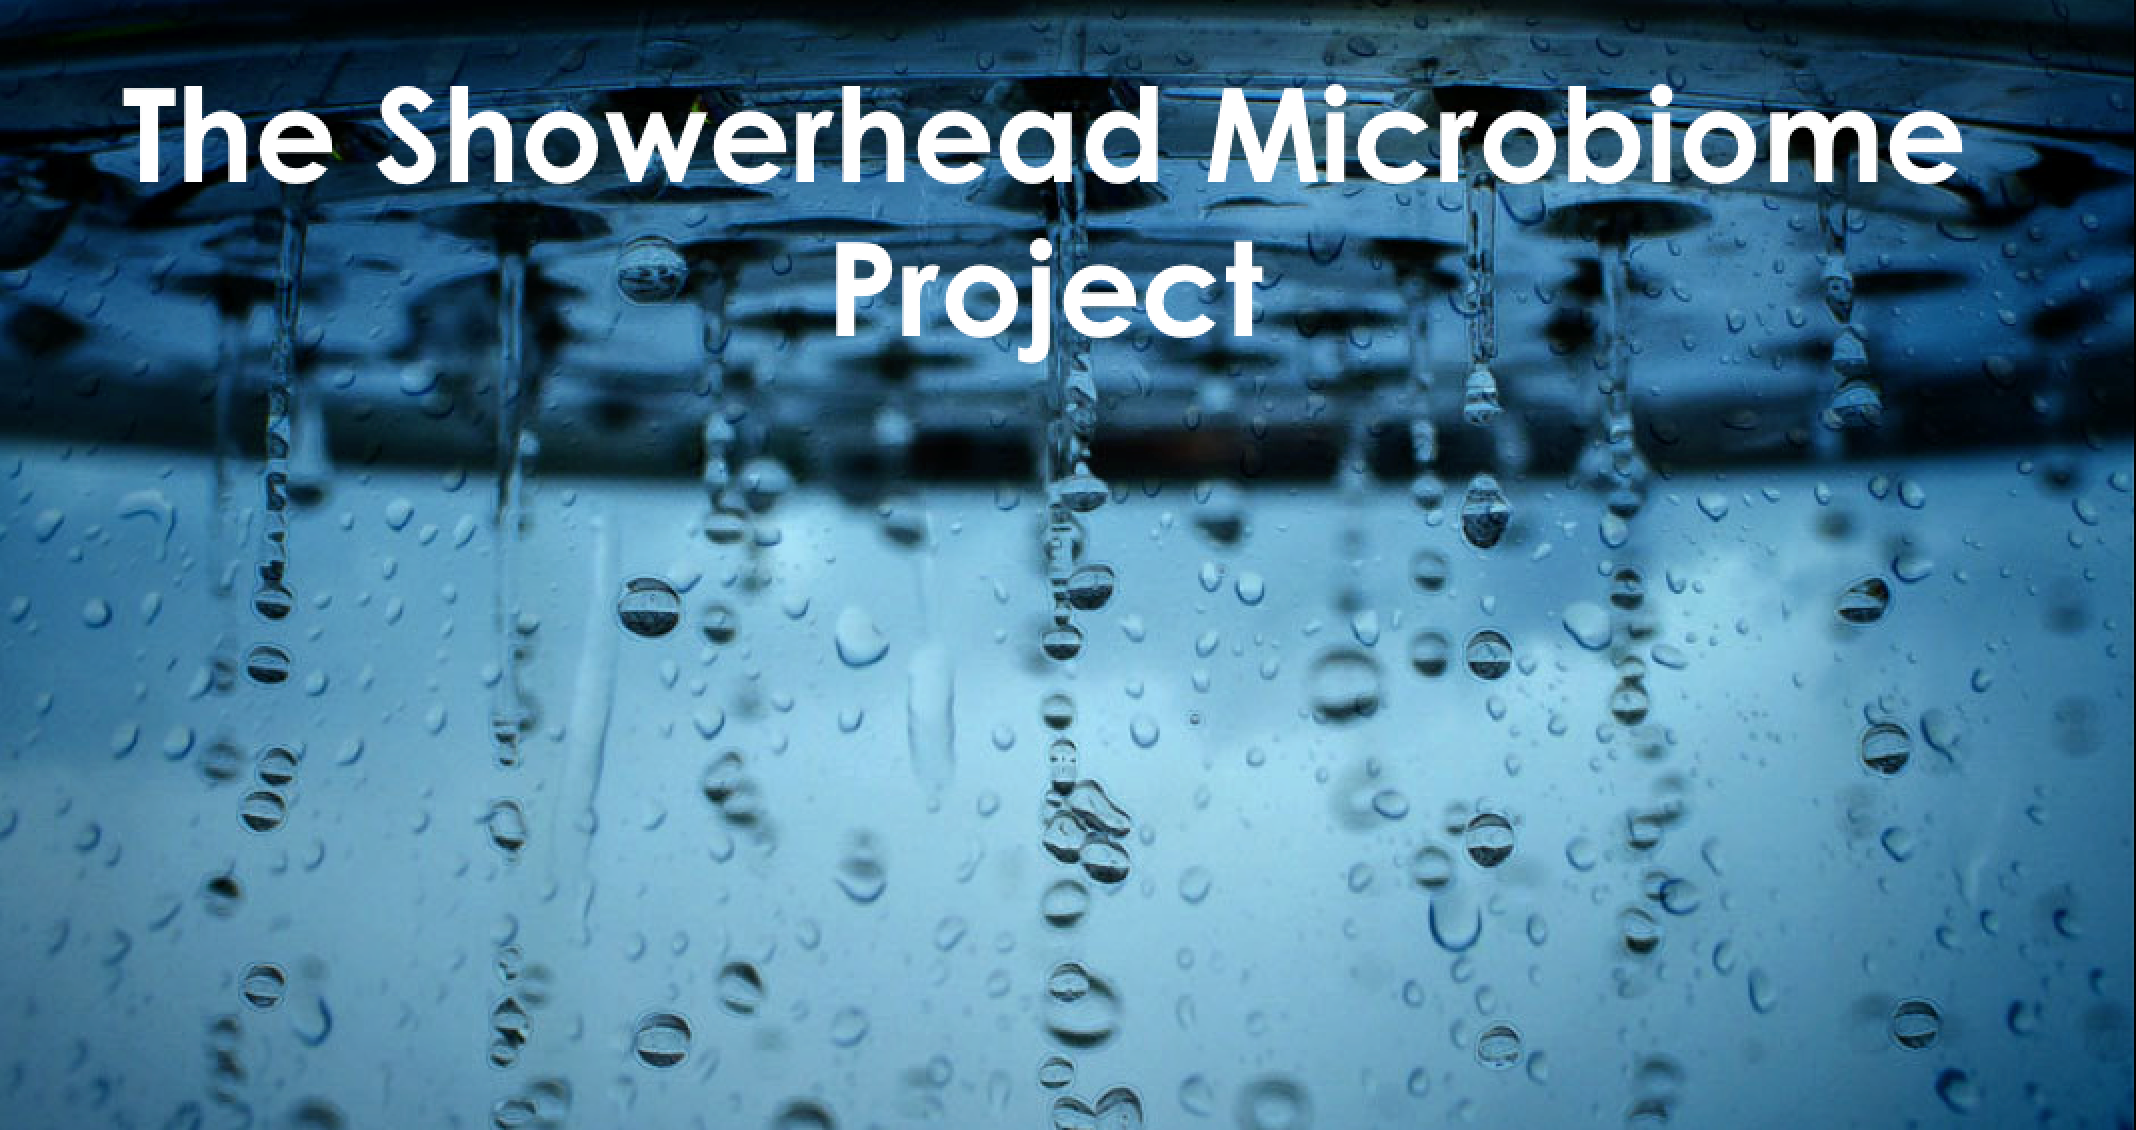 The Showerhead Microbiome Project